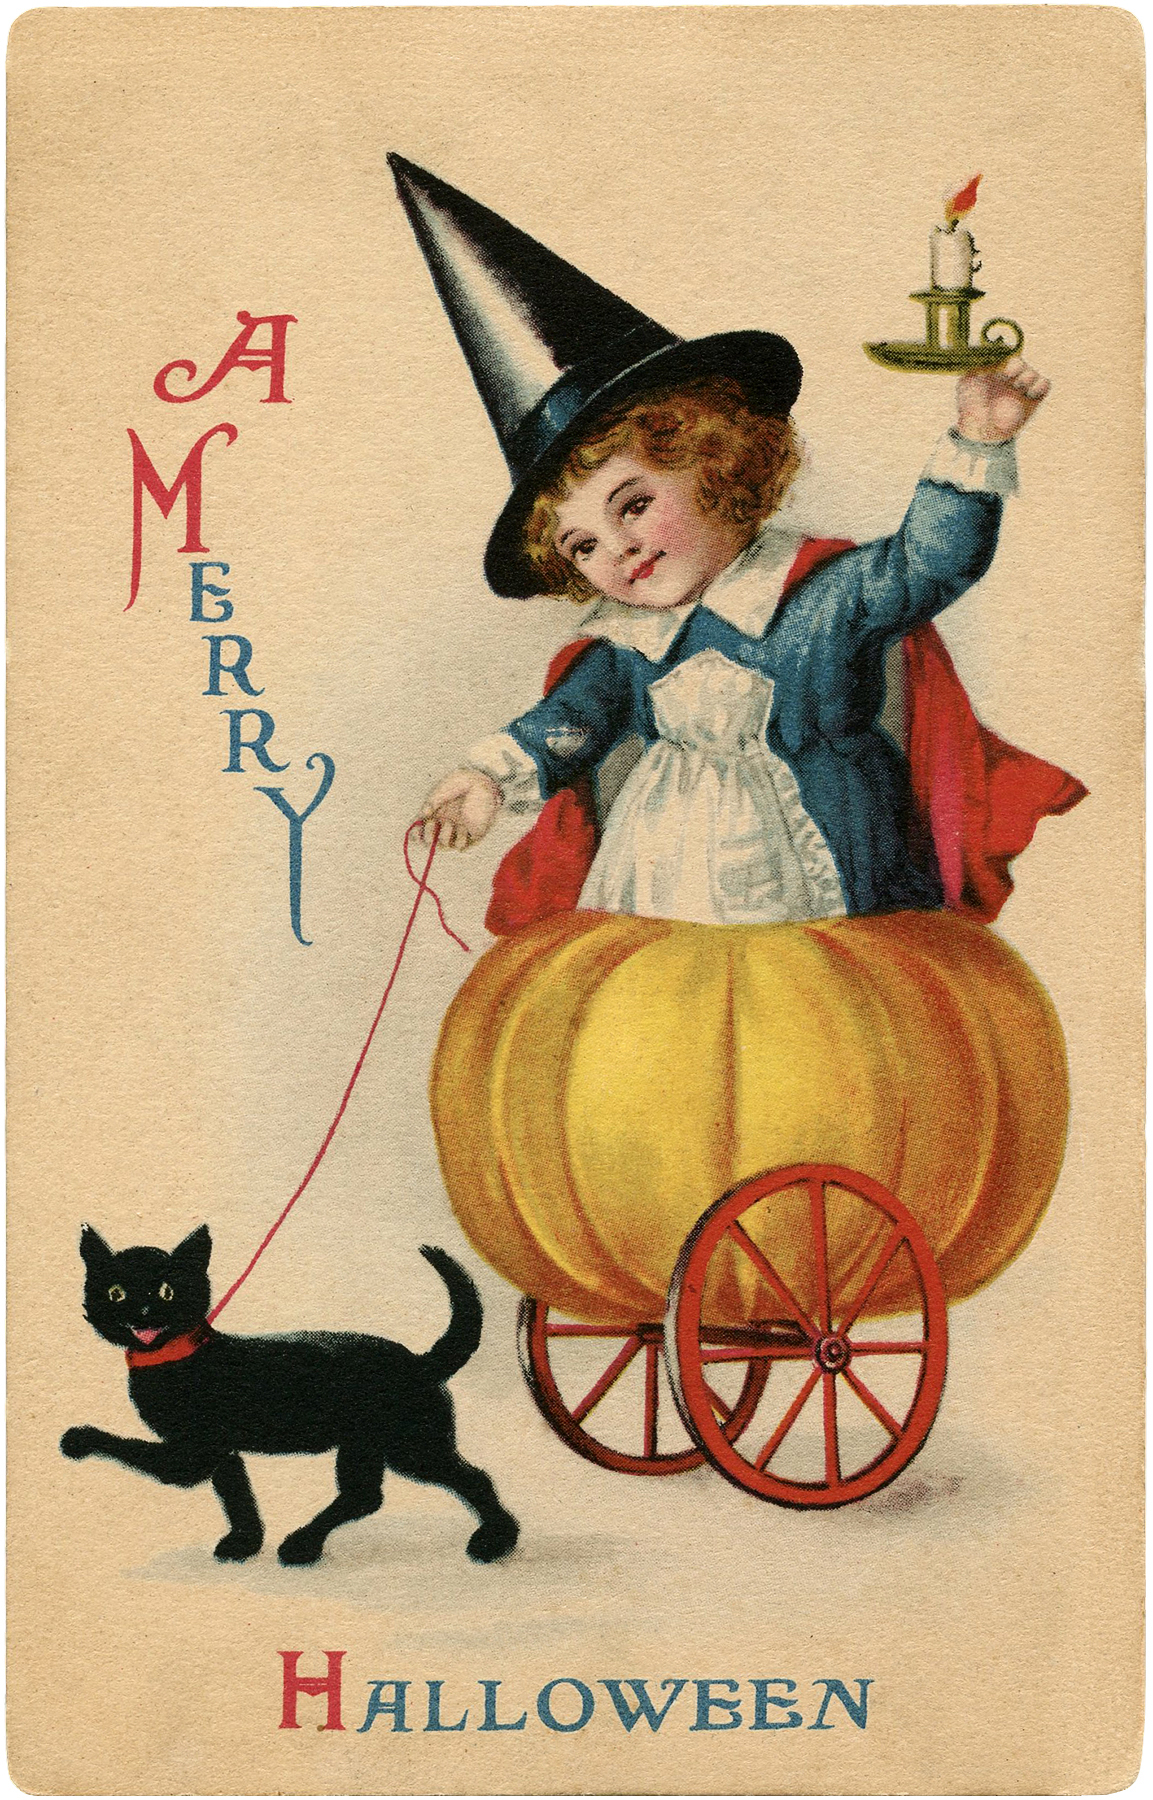 Vintage Sweet Halloween Witch Image Darling The